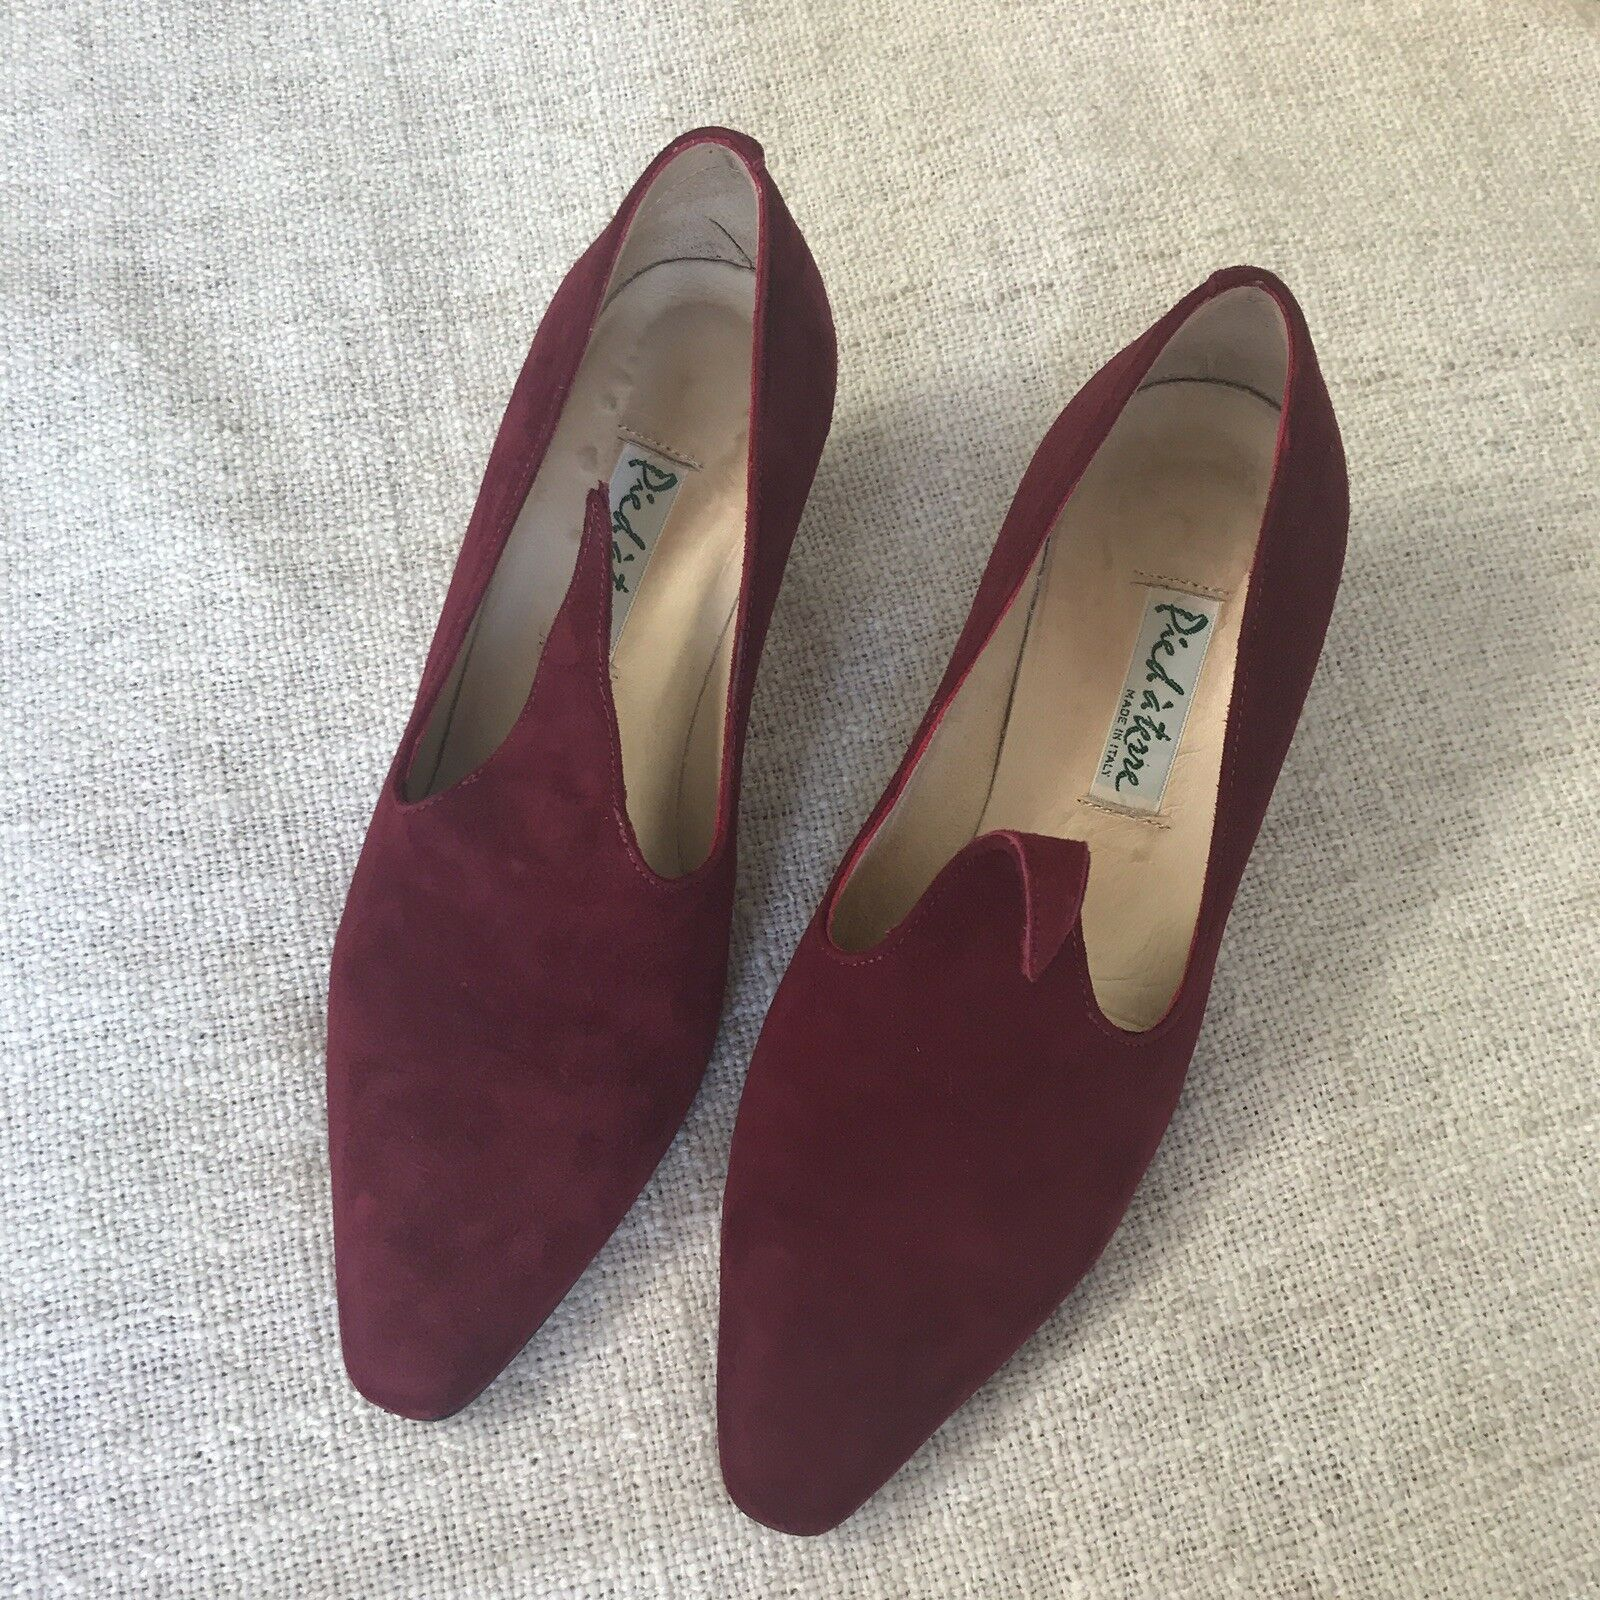 Pied a terre Size 4 Burgundy Suede Heels